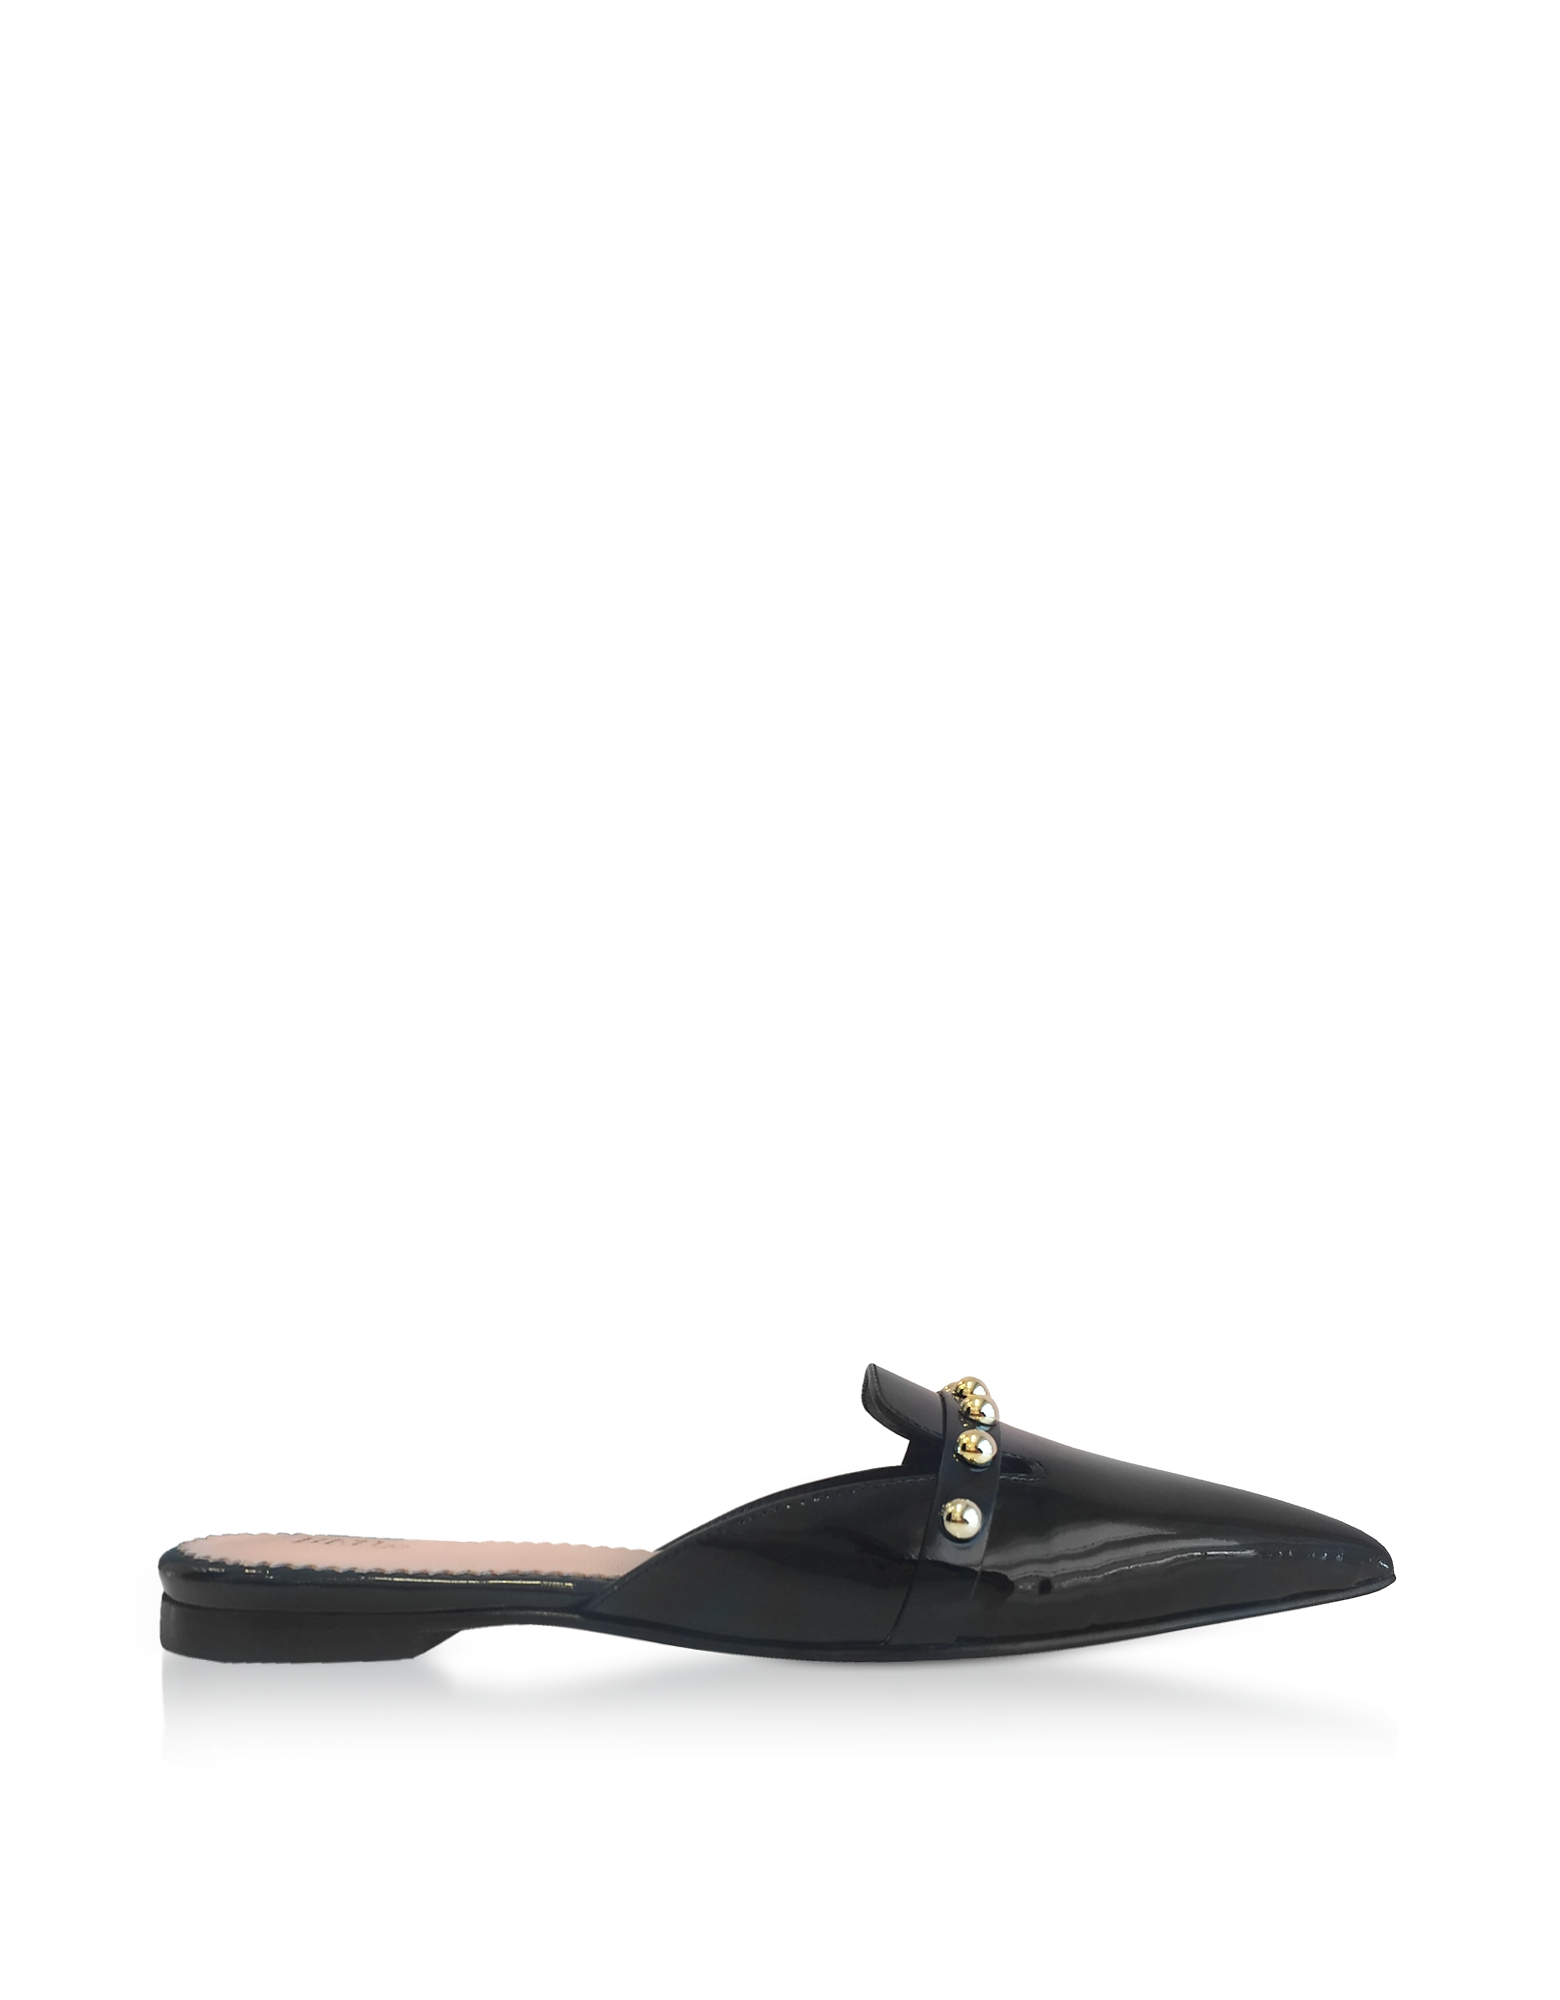 RED Valentino Shoes, Black Patent Leather Pointy Mules